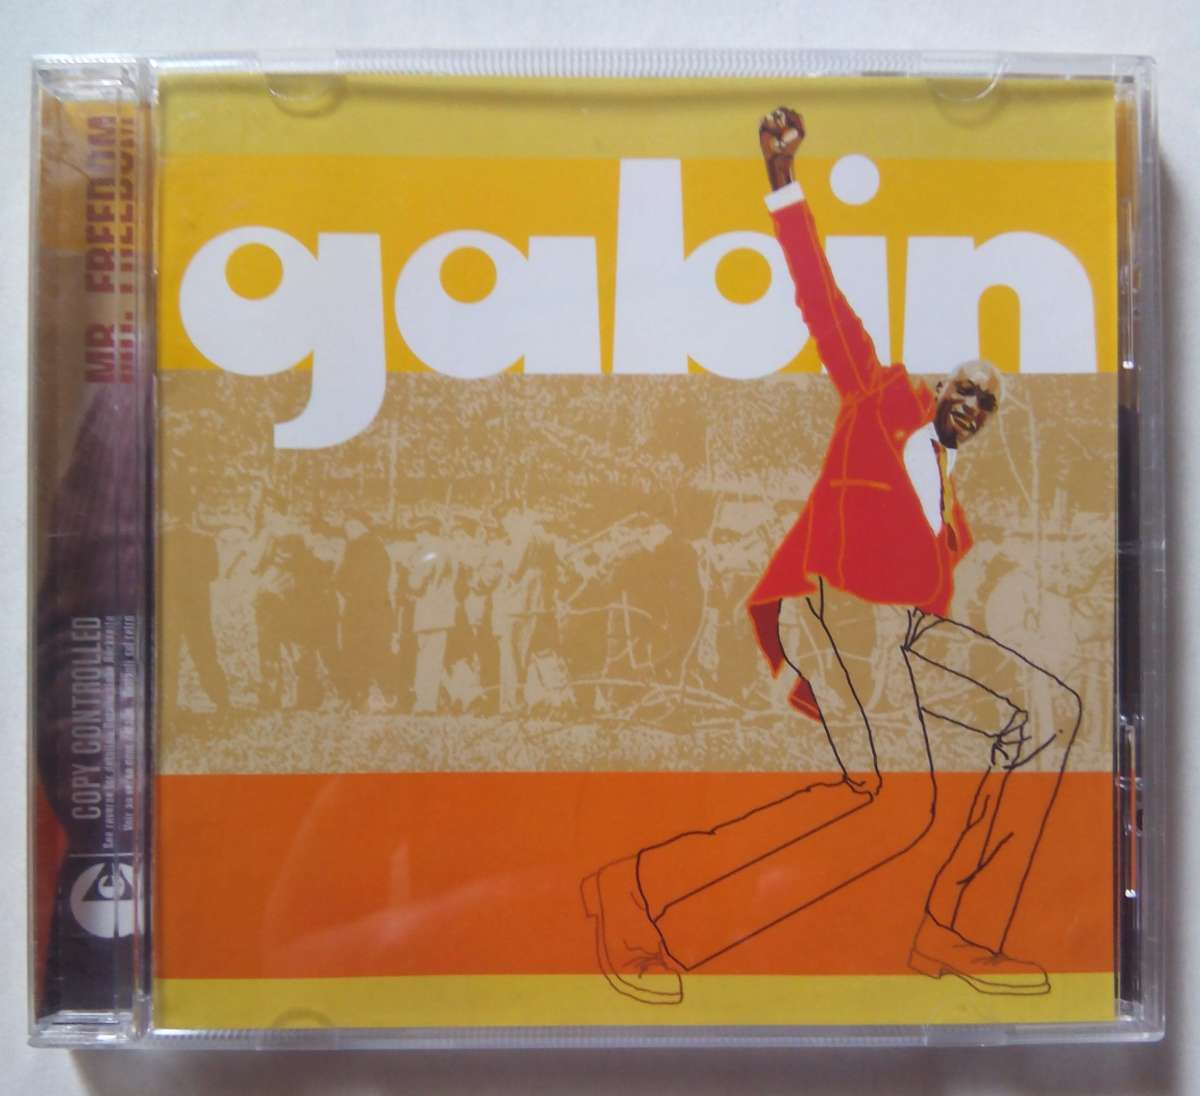 """ Gabin. Mr Freedom"" - CD диск"